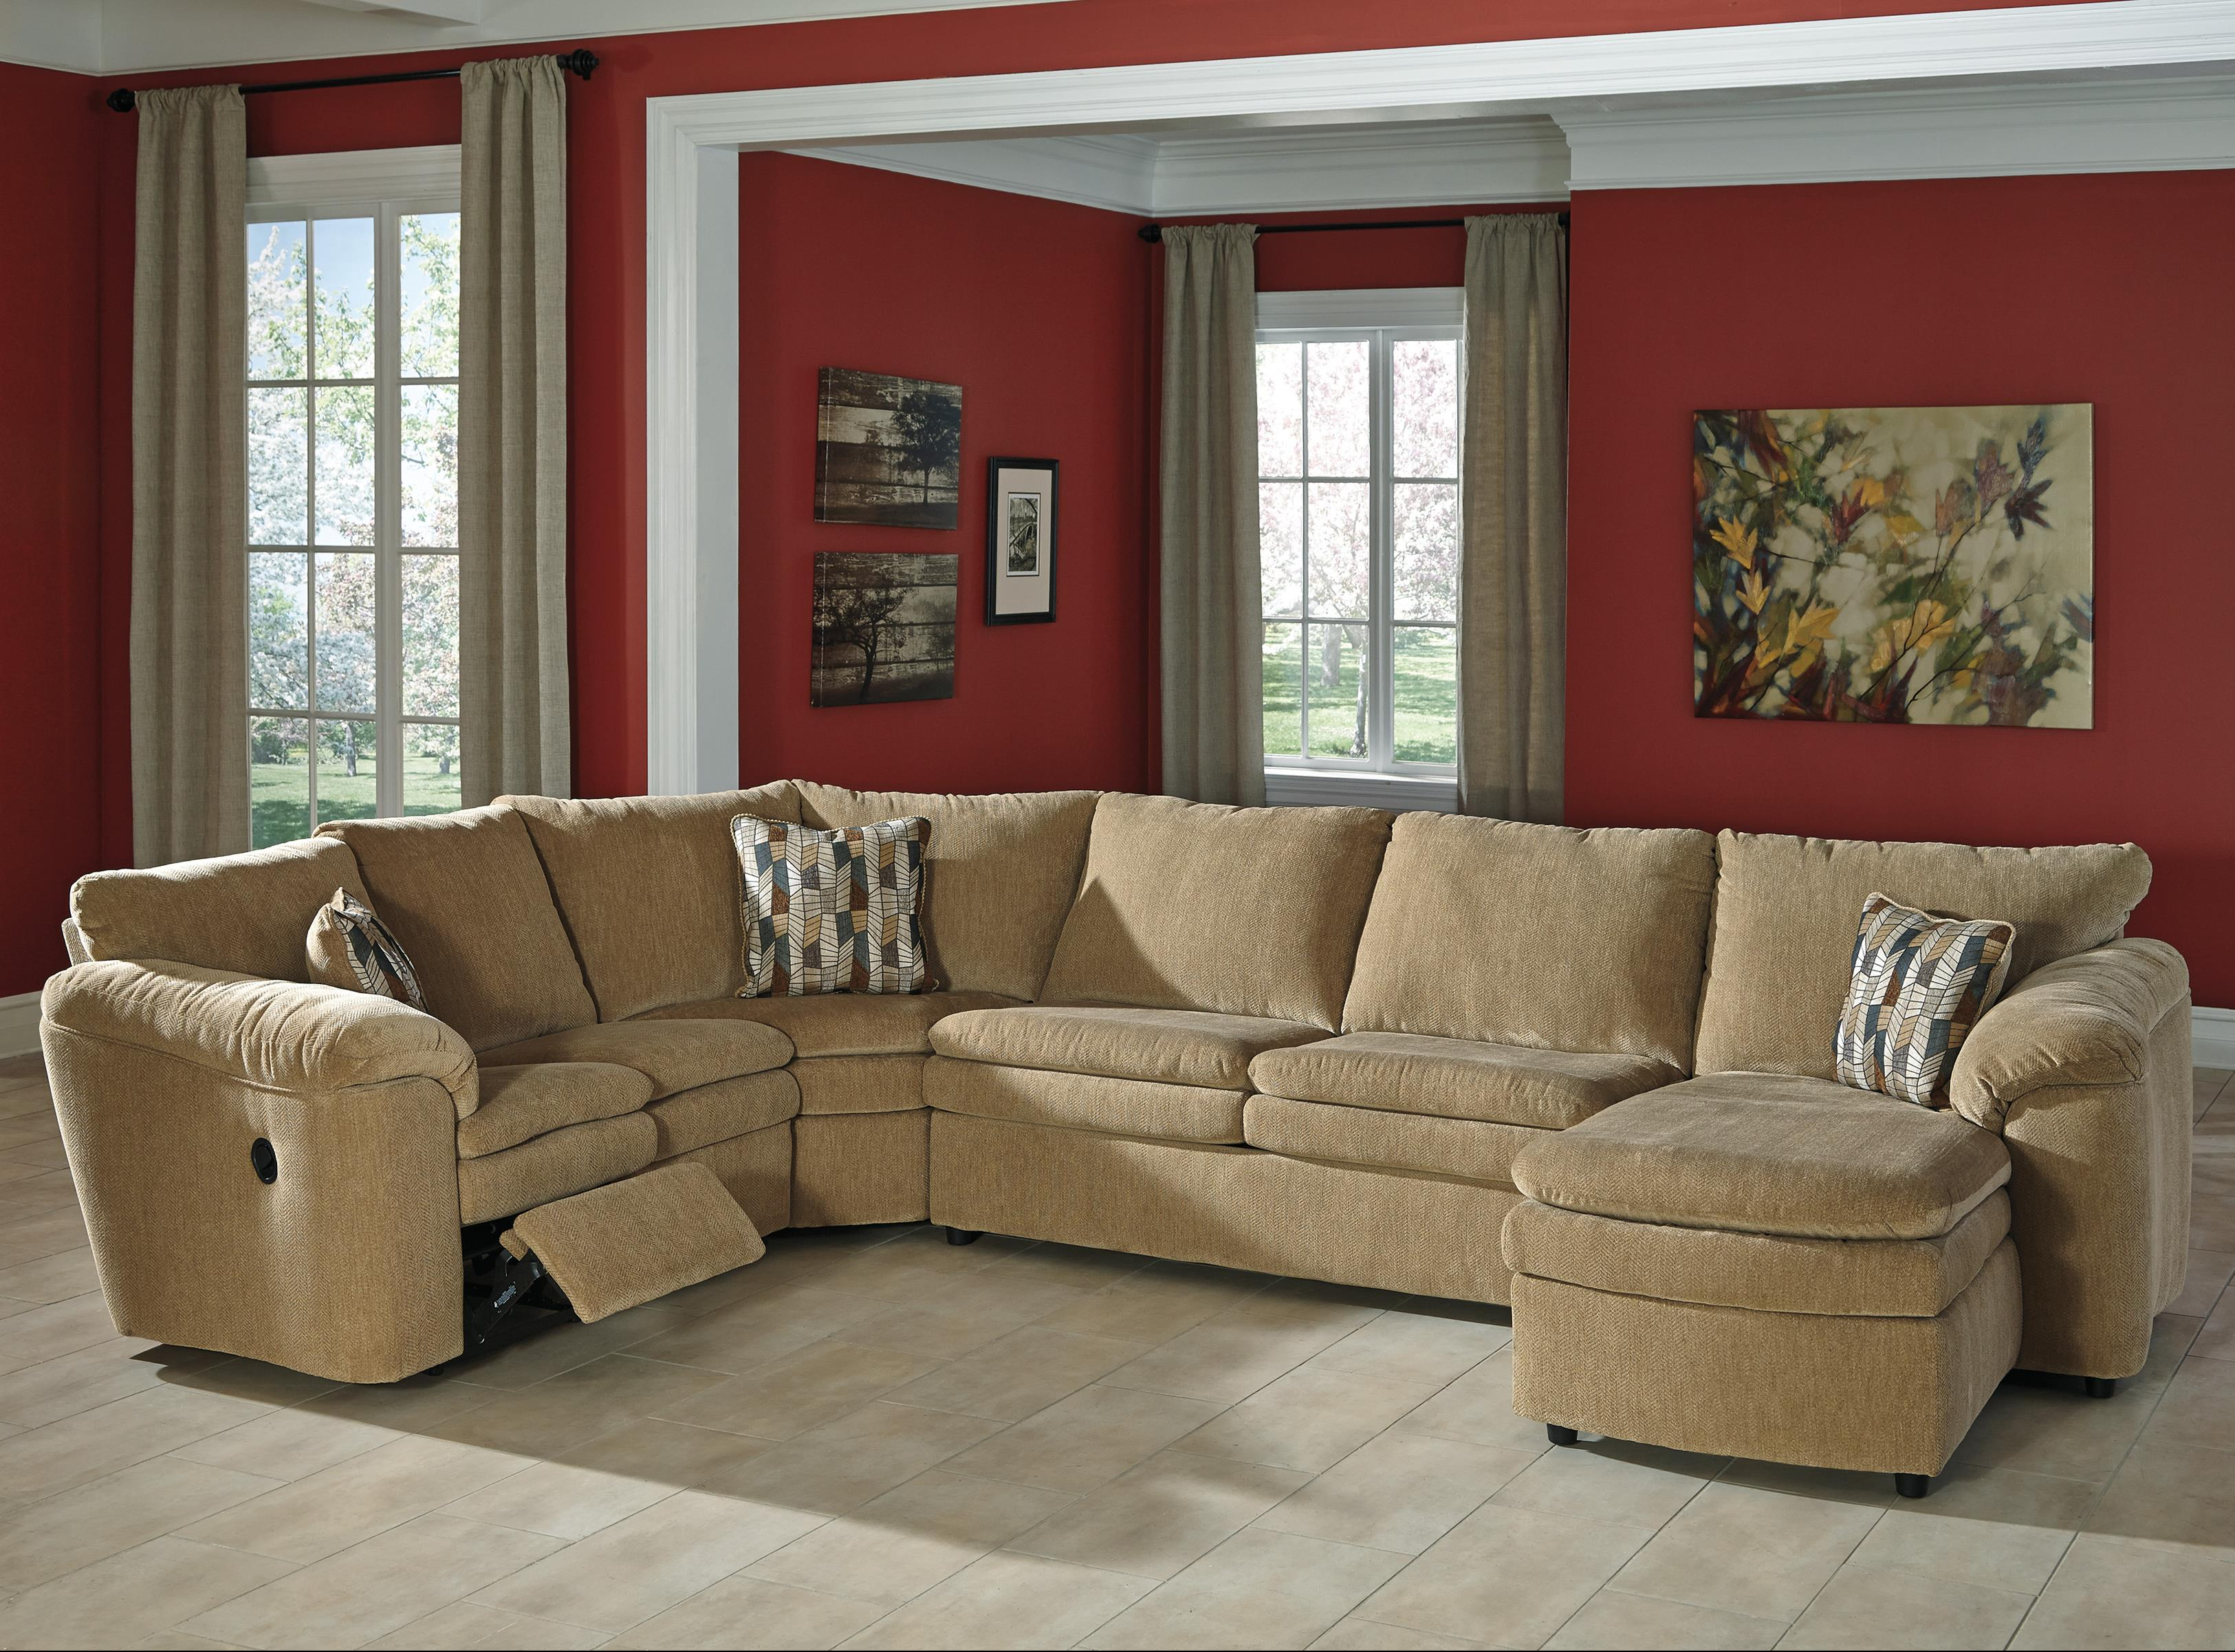 Signature Design by Ashley Coats 4-Piece Reclining Sectional - Item Number: 4410084+77+34+17